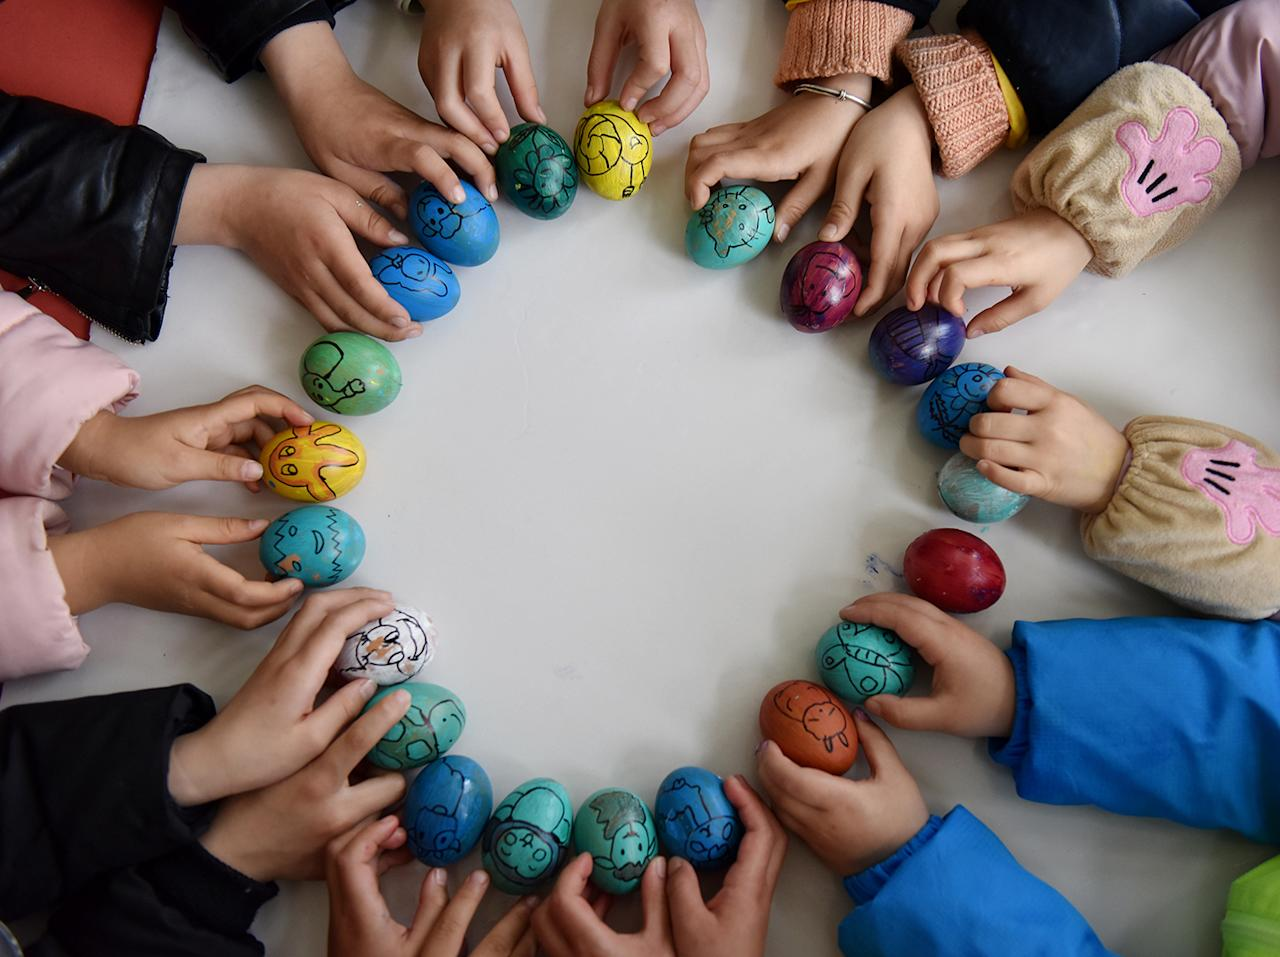 """<p>Childrenenjoy the game of """"egg balancing"""" on the Spring Equinox at a kindergarten in Chaohu on March 20, 2017 in Hefei, Anhui Province of China. People enjoy standing eggs on end to celebrate the Spring Equinox in China. (VCG via Getty Images) </p>"""